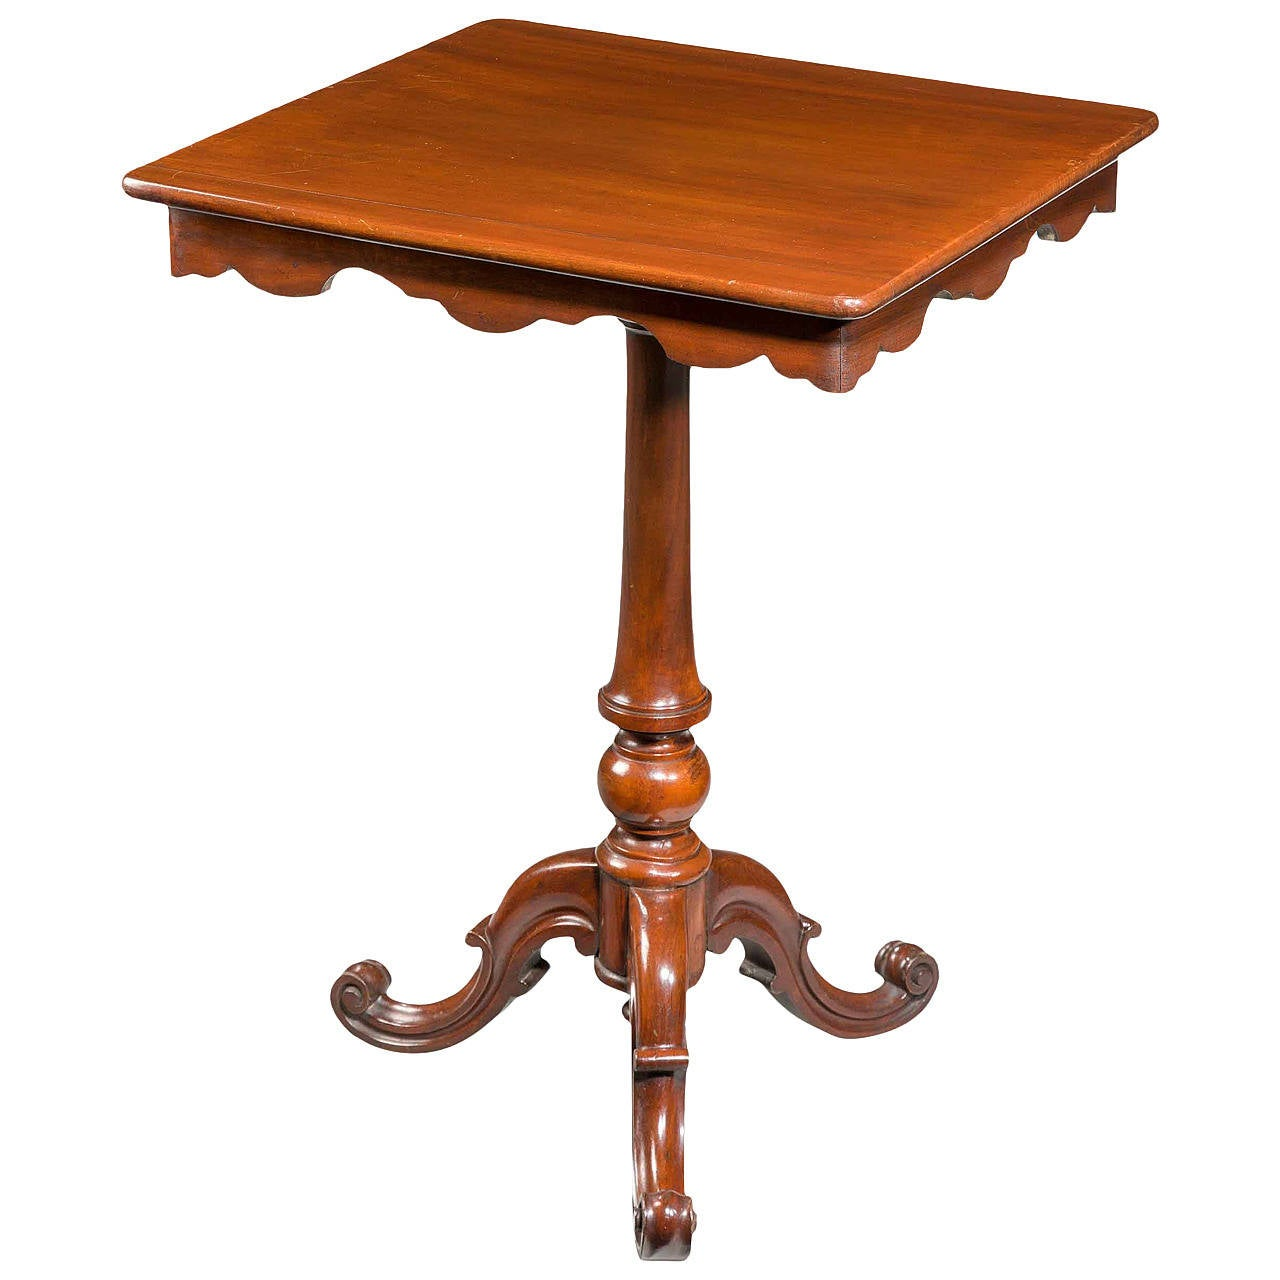 Mid-19th Century Mahogany Occasional Table